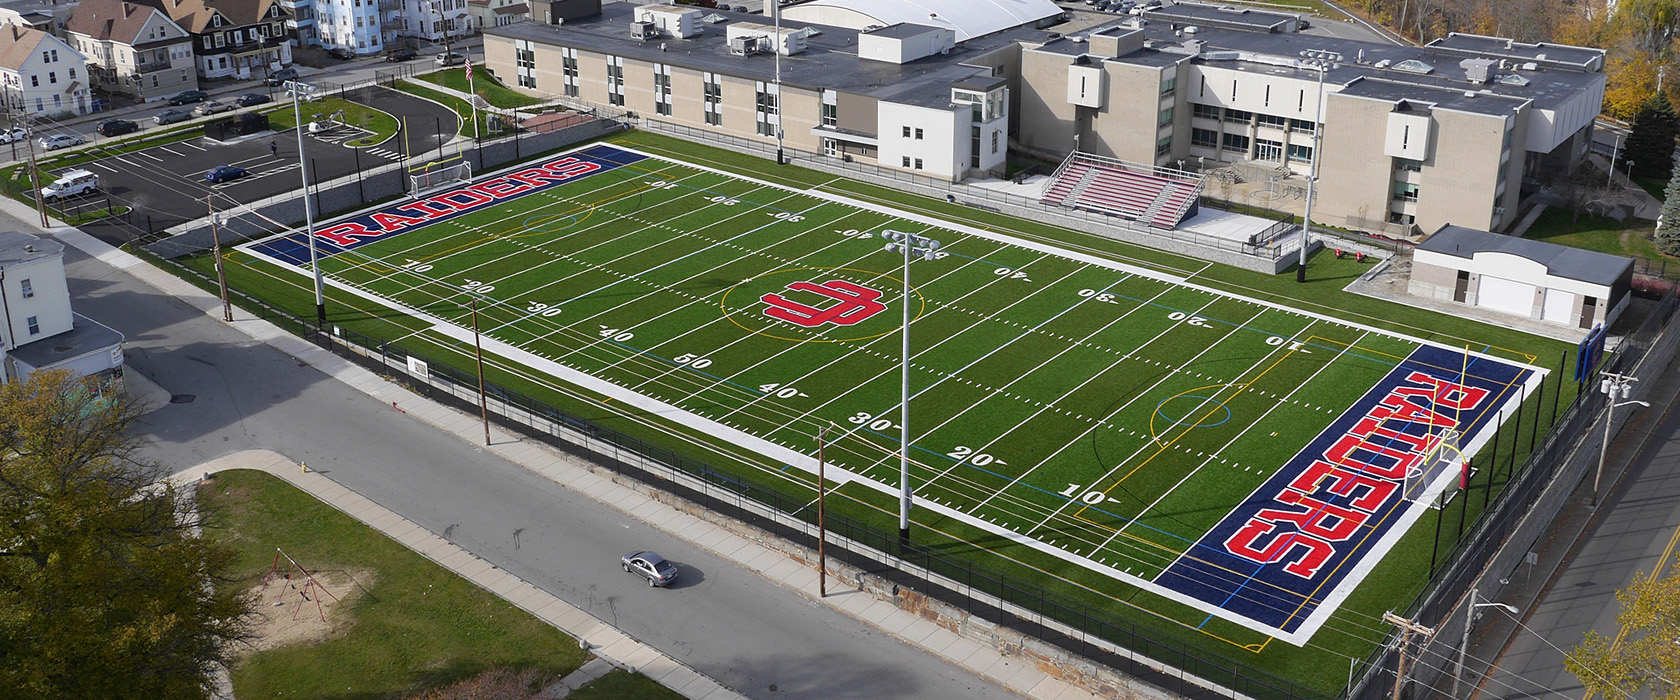 Central Catholic High School Athletic Field